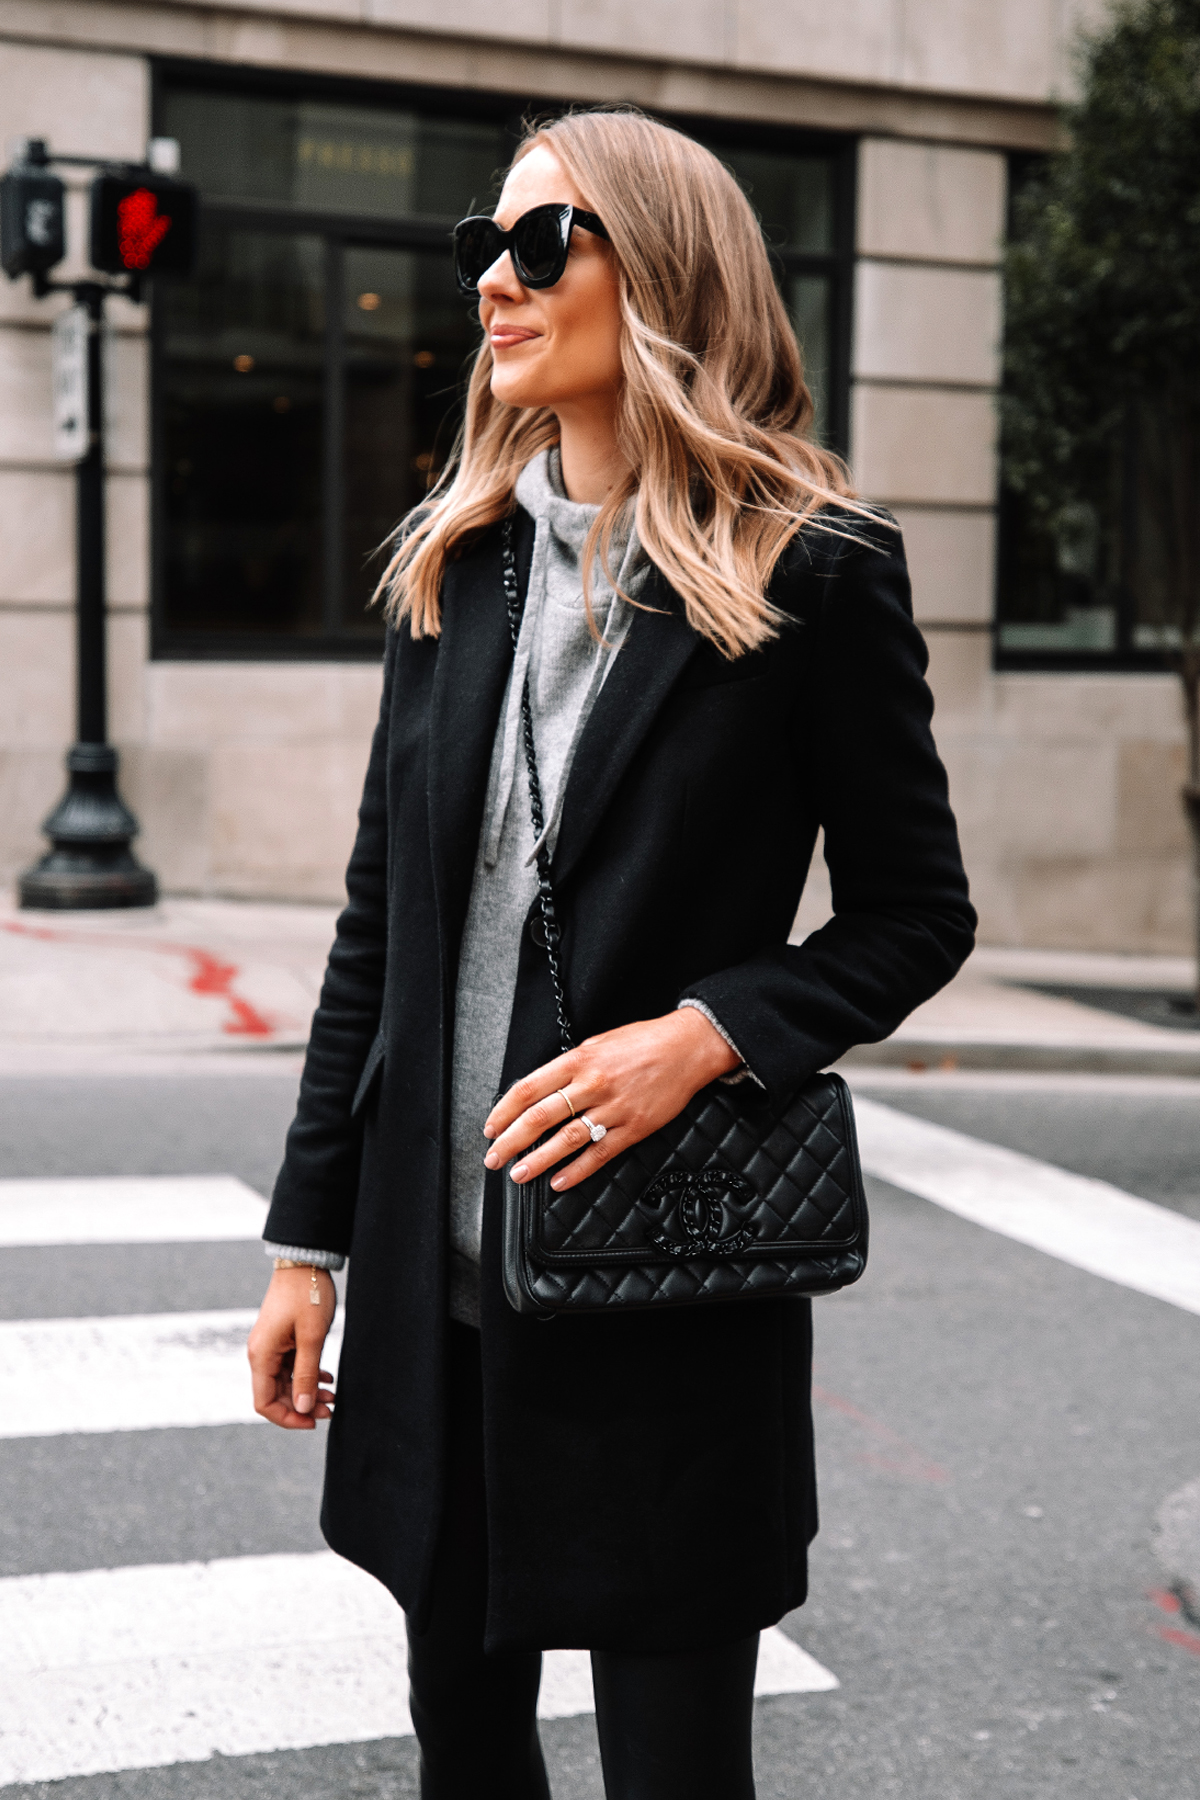 Fashion Jackson Wearing Black Wool Coat Grey Sweater Commando Black Faux Leather Leggings Black Chanel Filigree Handbag 1